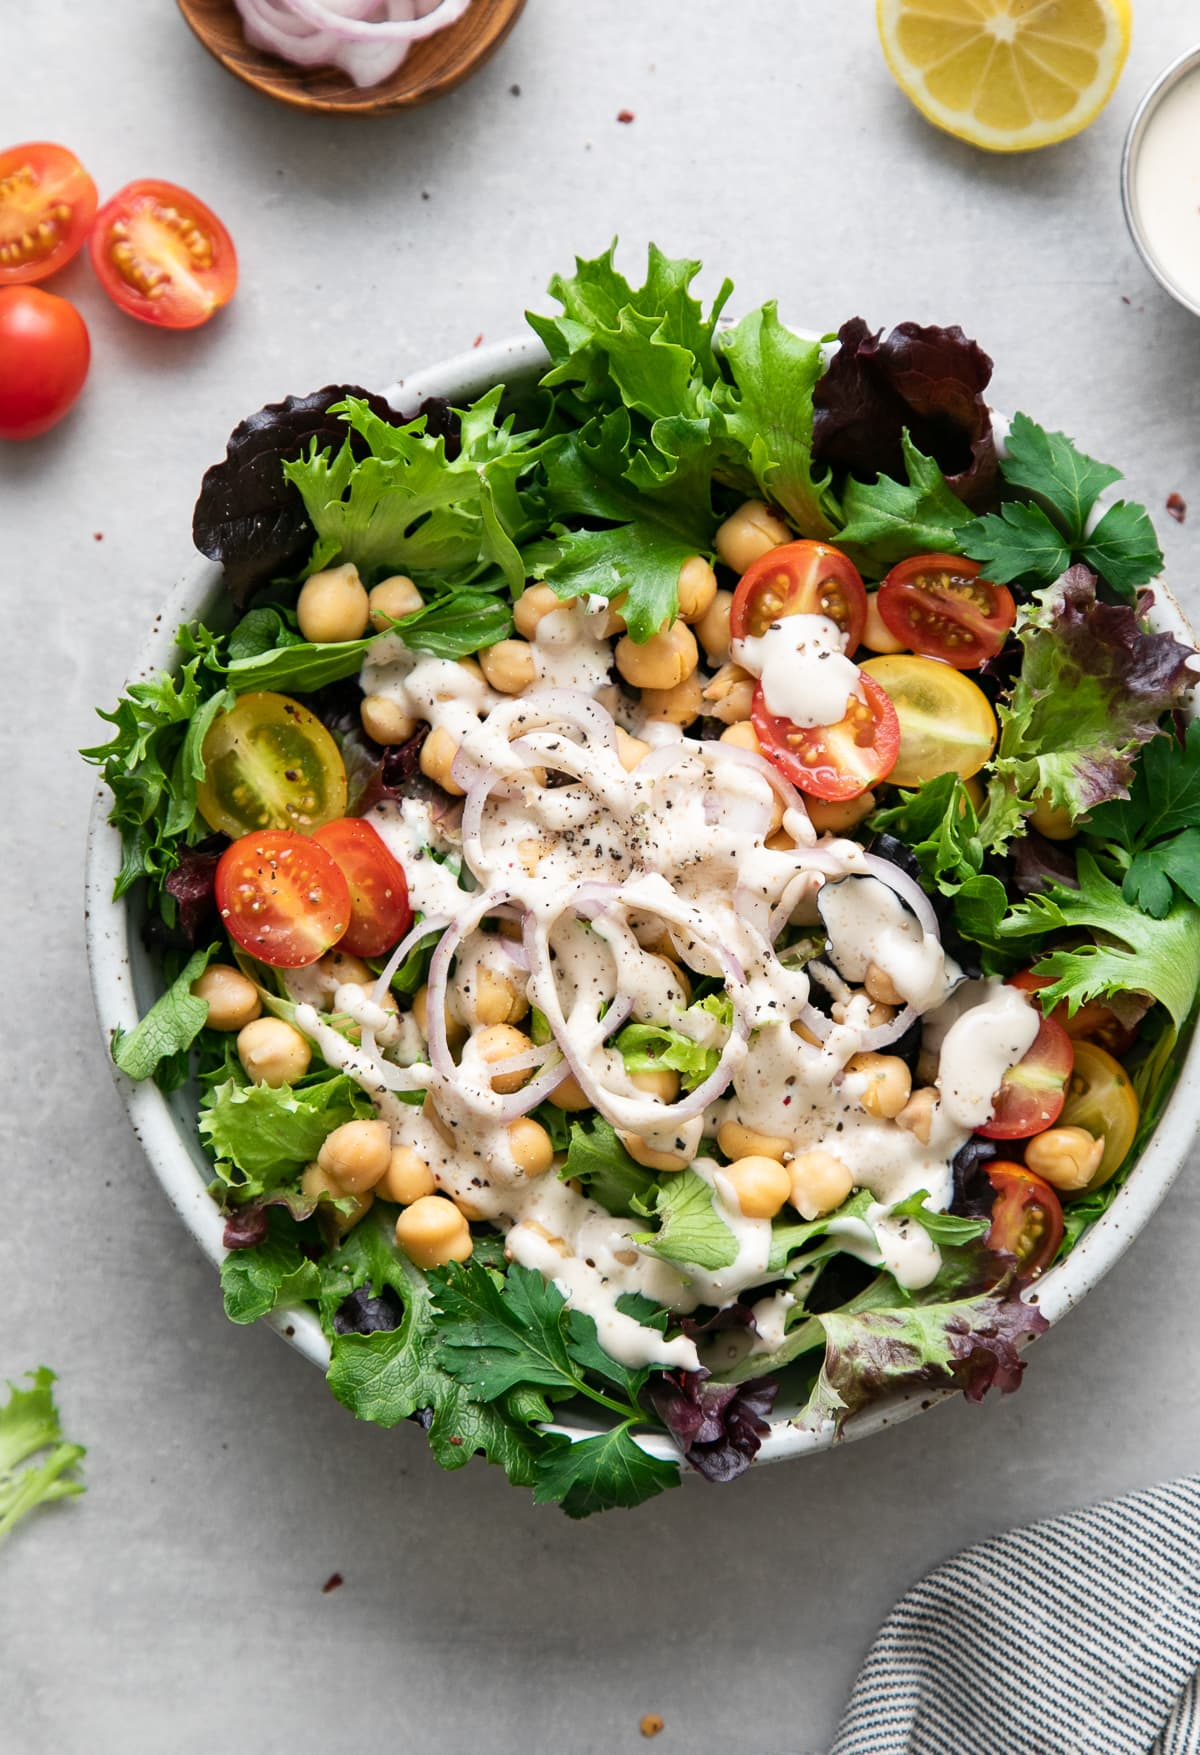 top down view of leafy green salad with chickpeas and dressed with lemony tahini dressing.